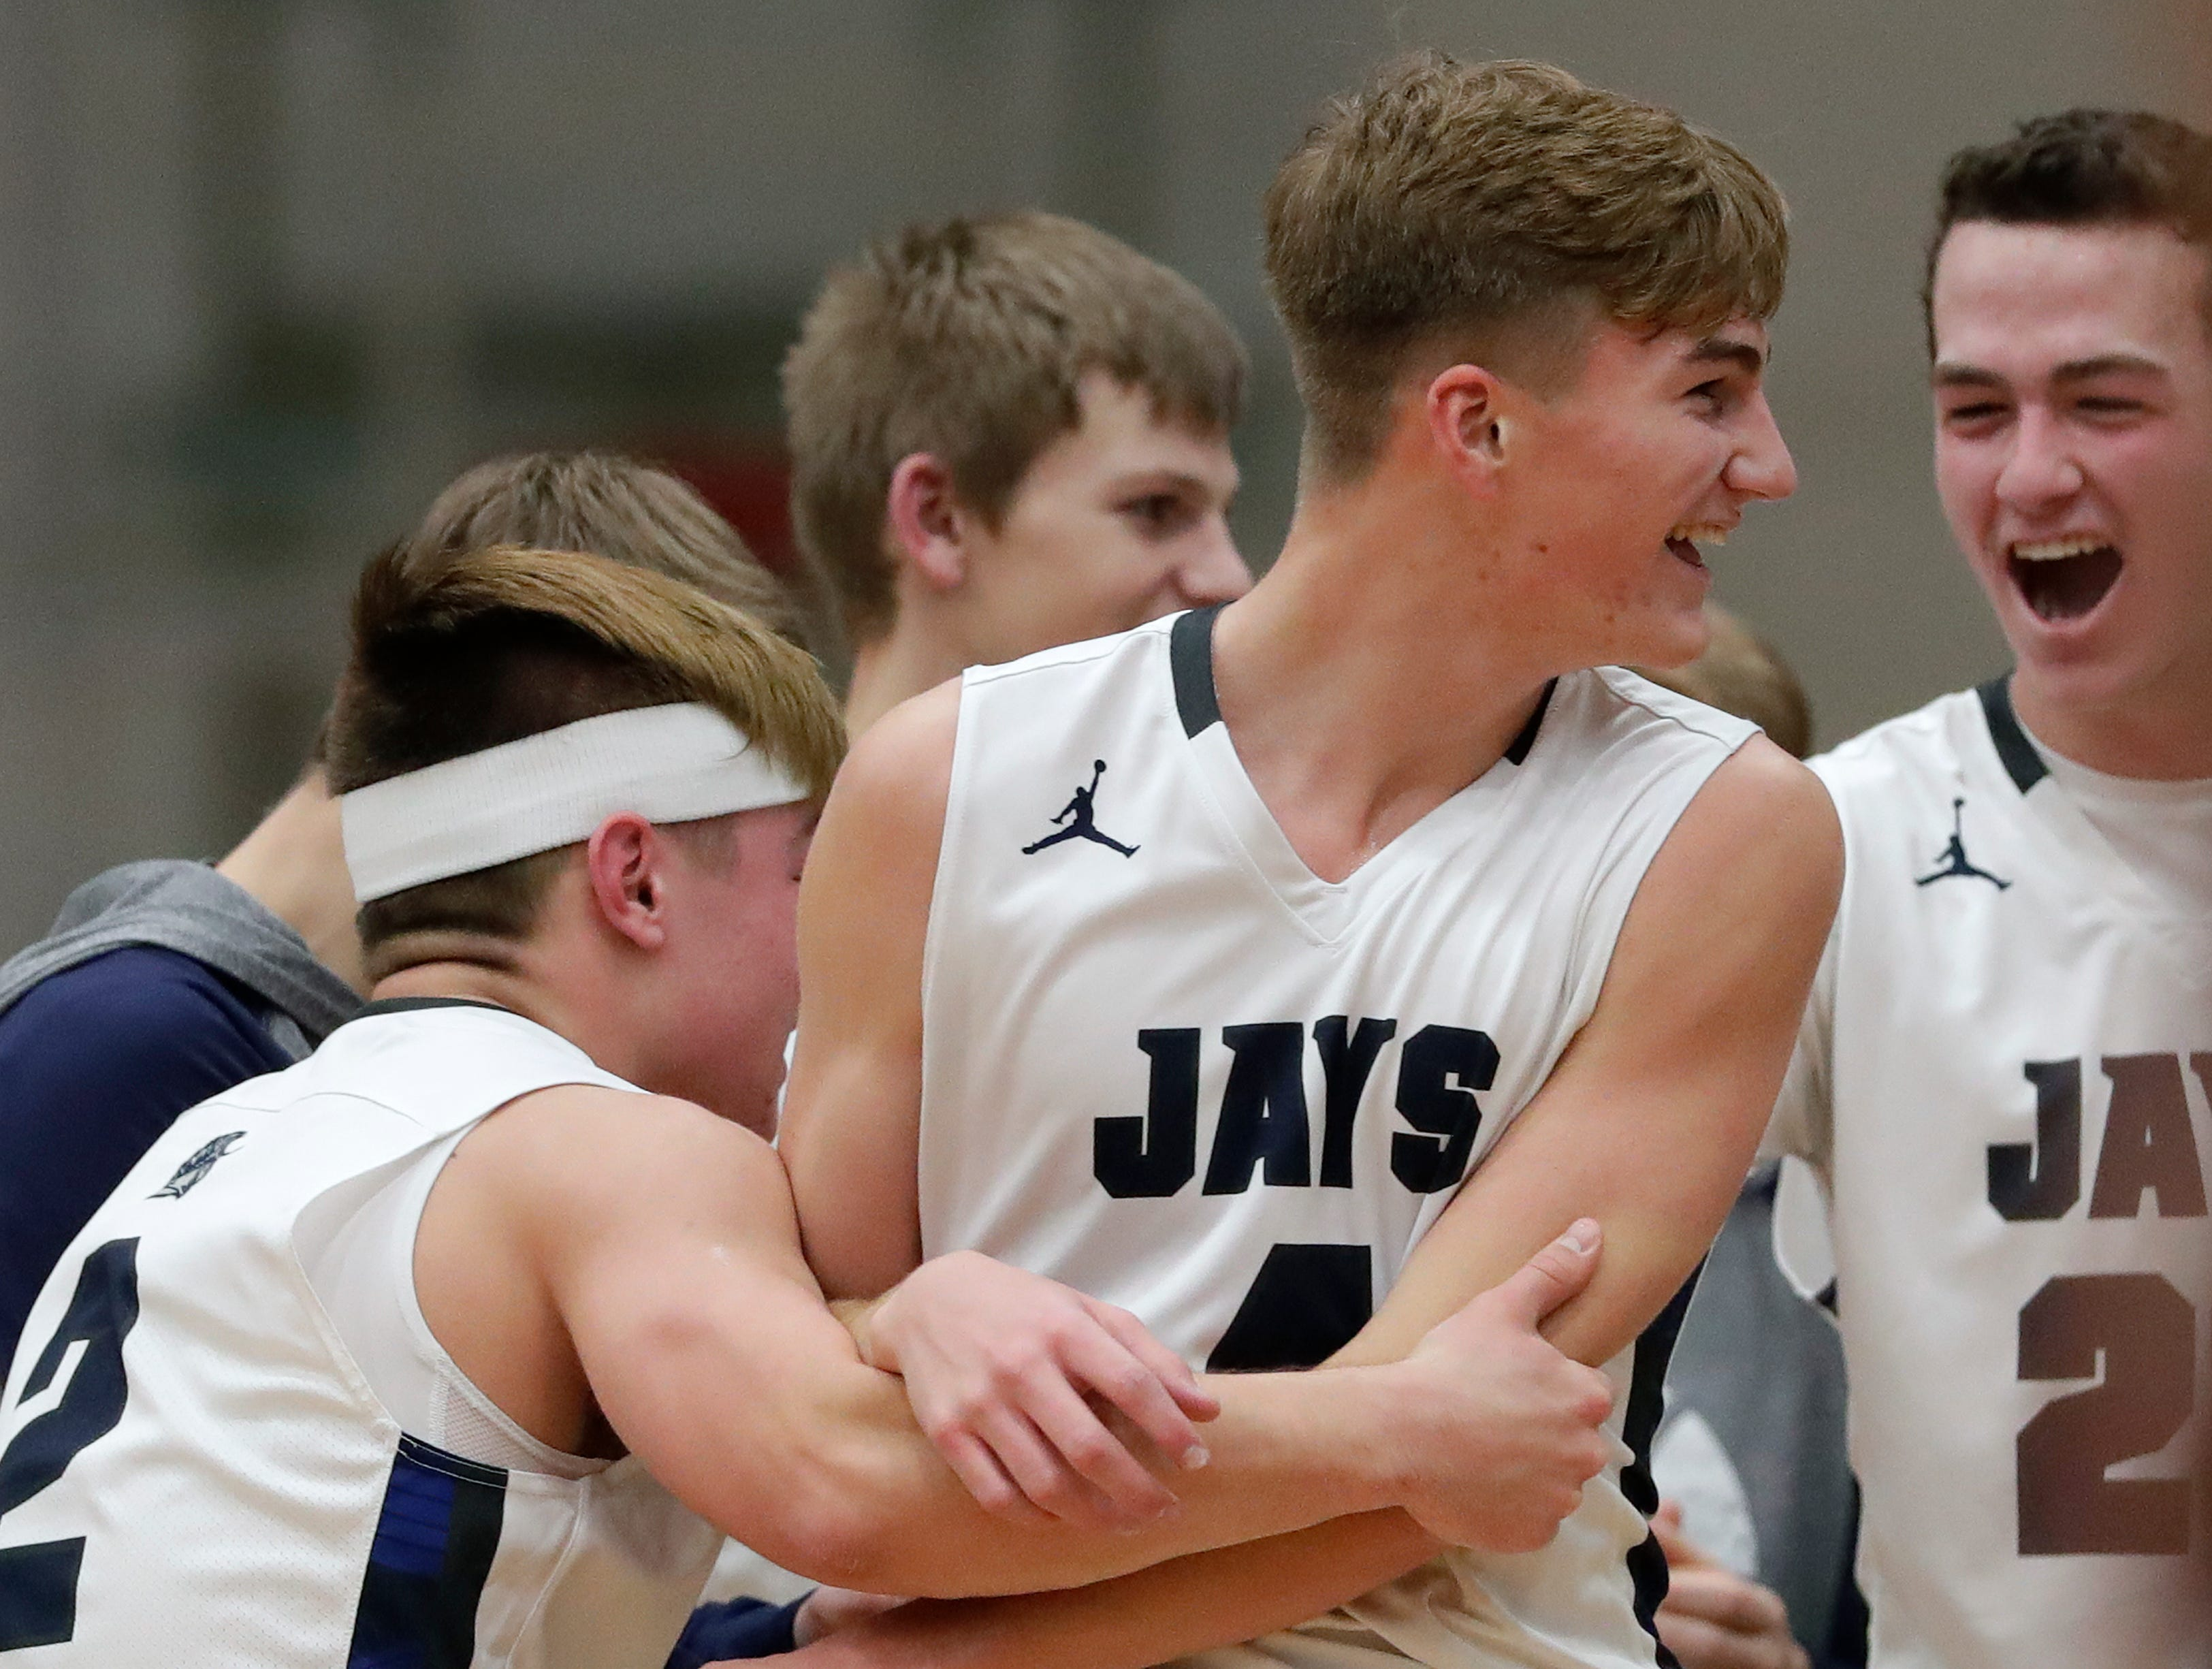 Menasha High School's Jacob Everson (4) is swarmed by teammates after becoming the career scoring leader by making a basket against West De Pere High School during their boys basketball game Tuesday, December 11, 2018, in Menasha, Wis. 